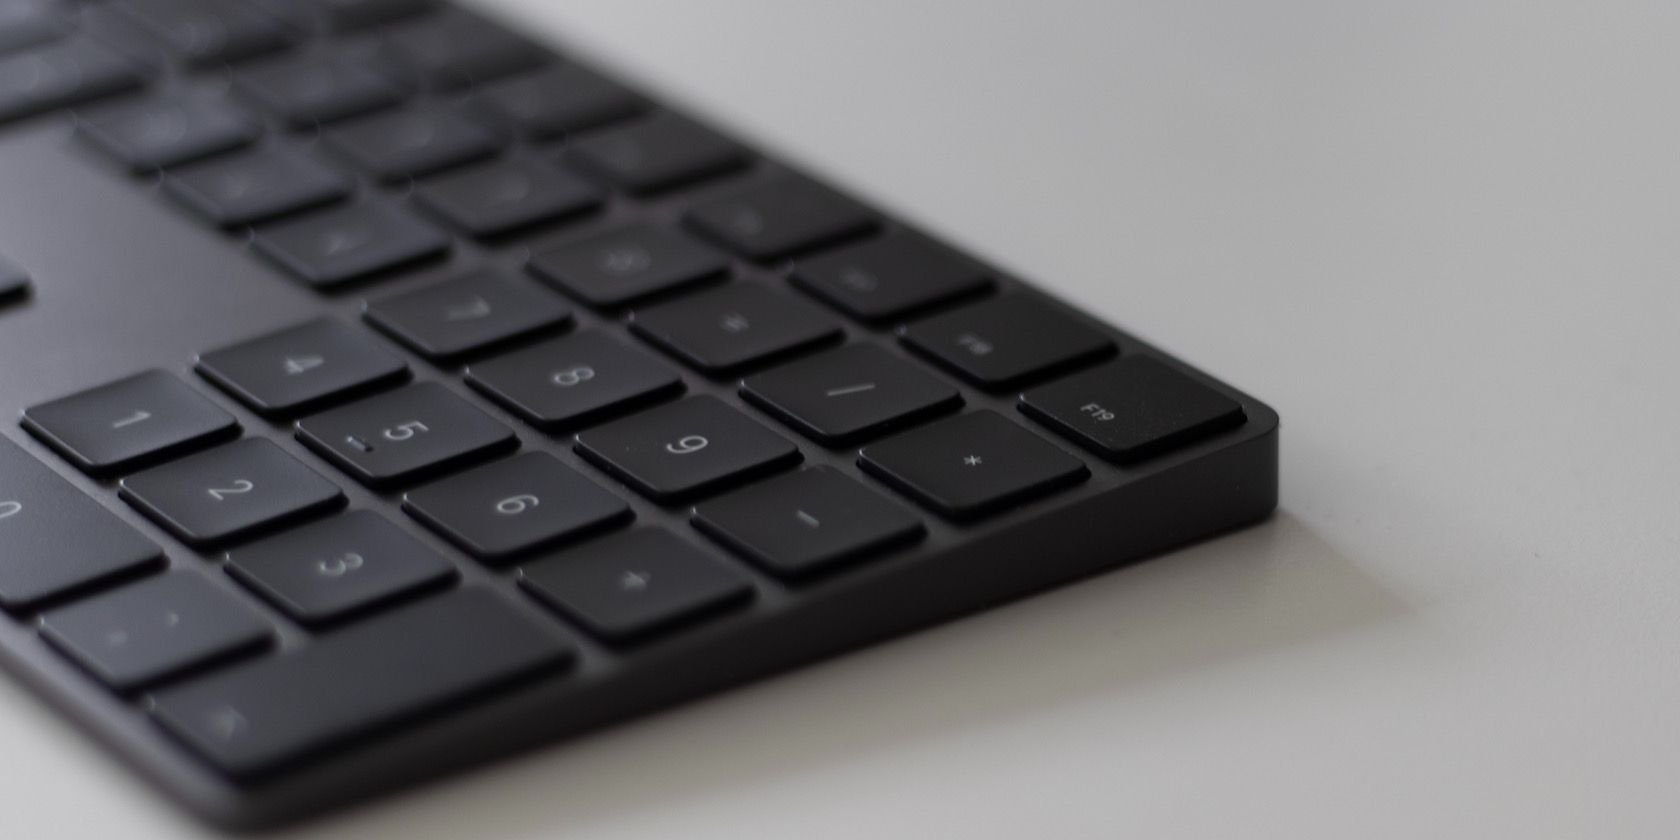 Apple Is Discontinuing Its Space Gray Mac Accessories So Buy Them While You Can